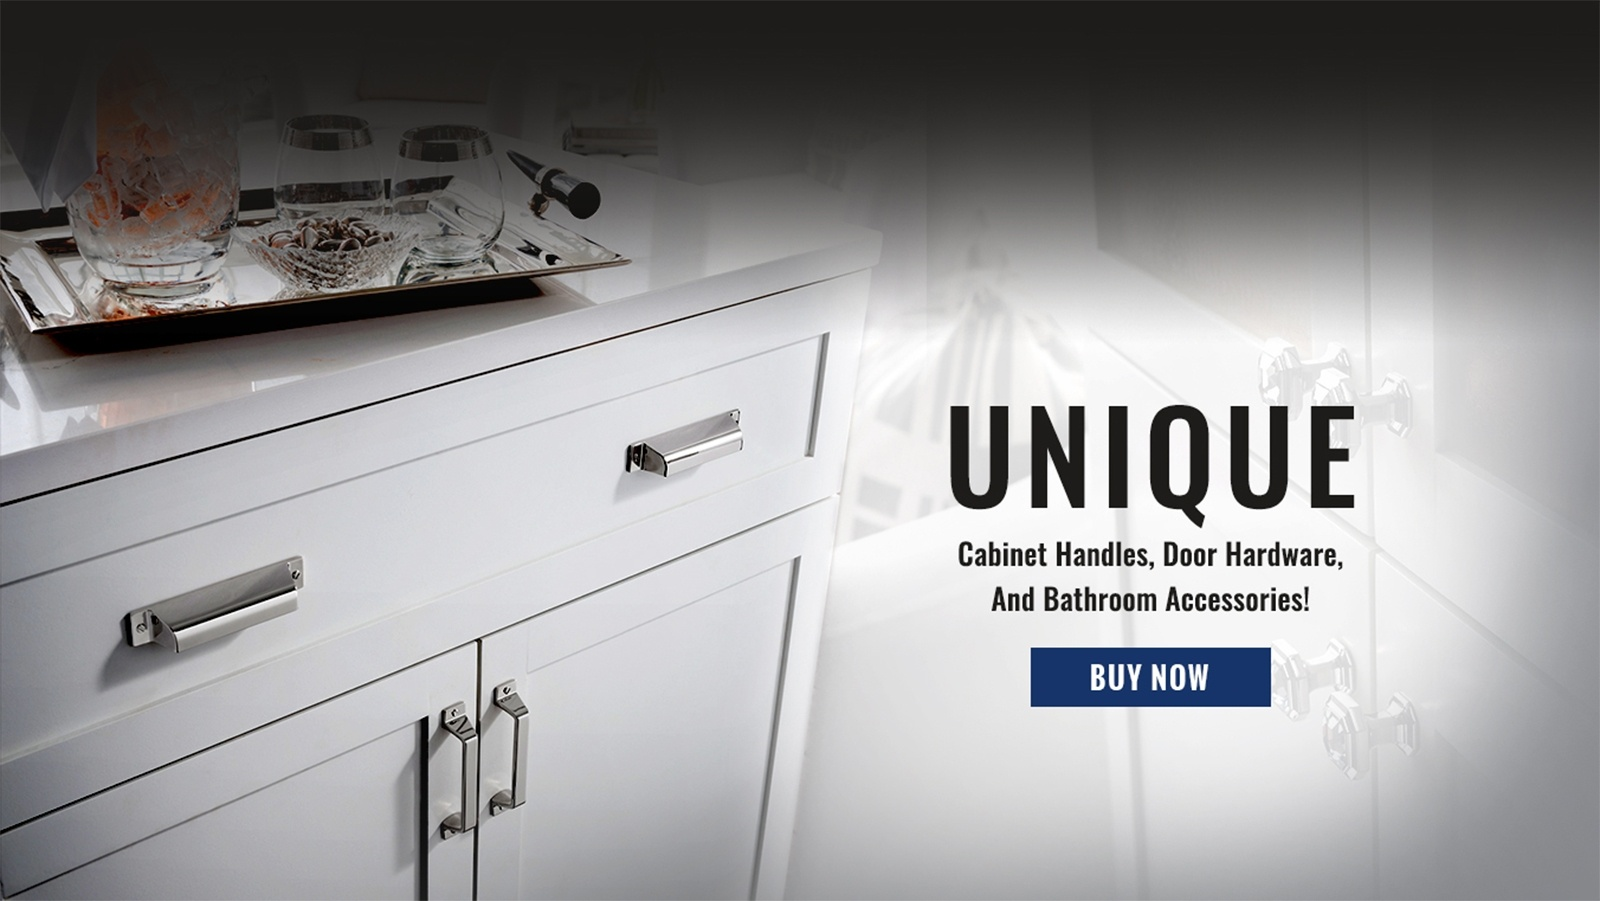 Handle This! | Kitchen & Bathroom Accessories in Bradford, Toronto